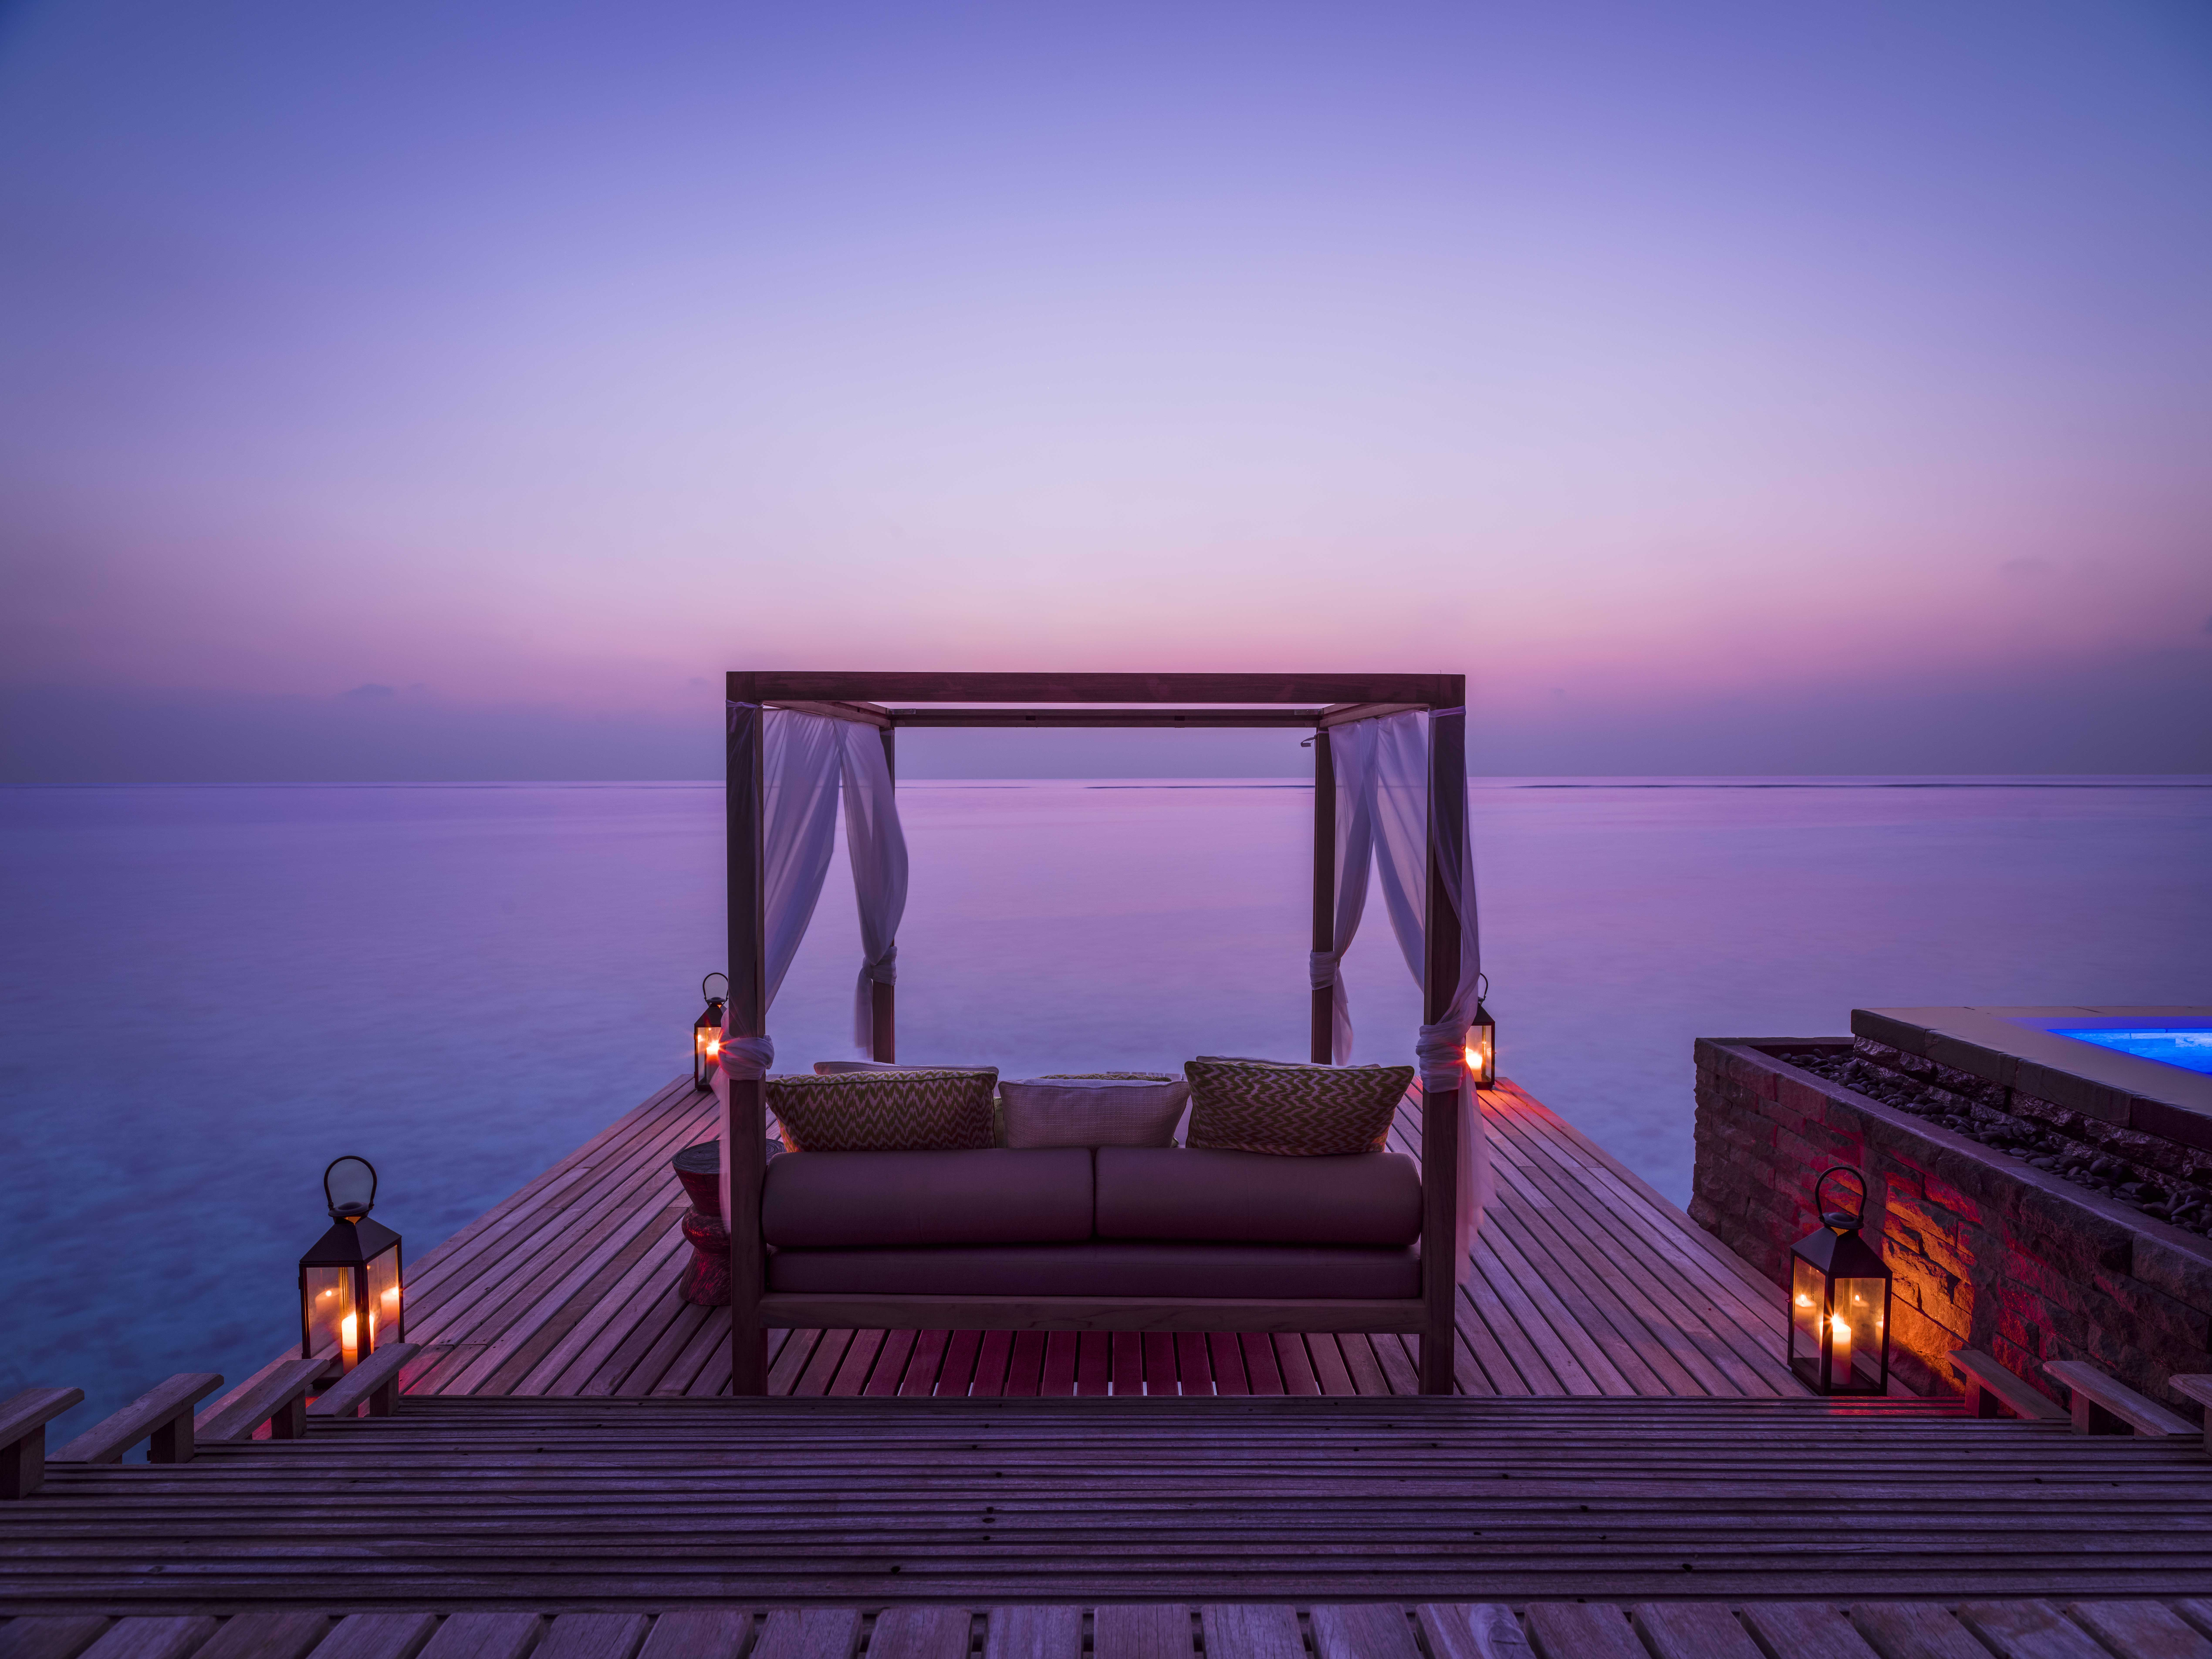 OneAndOnly_ReethiRah_Accommodation_GrandWaterVilla_Cabana-2_V2a_MR.jpg